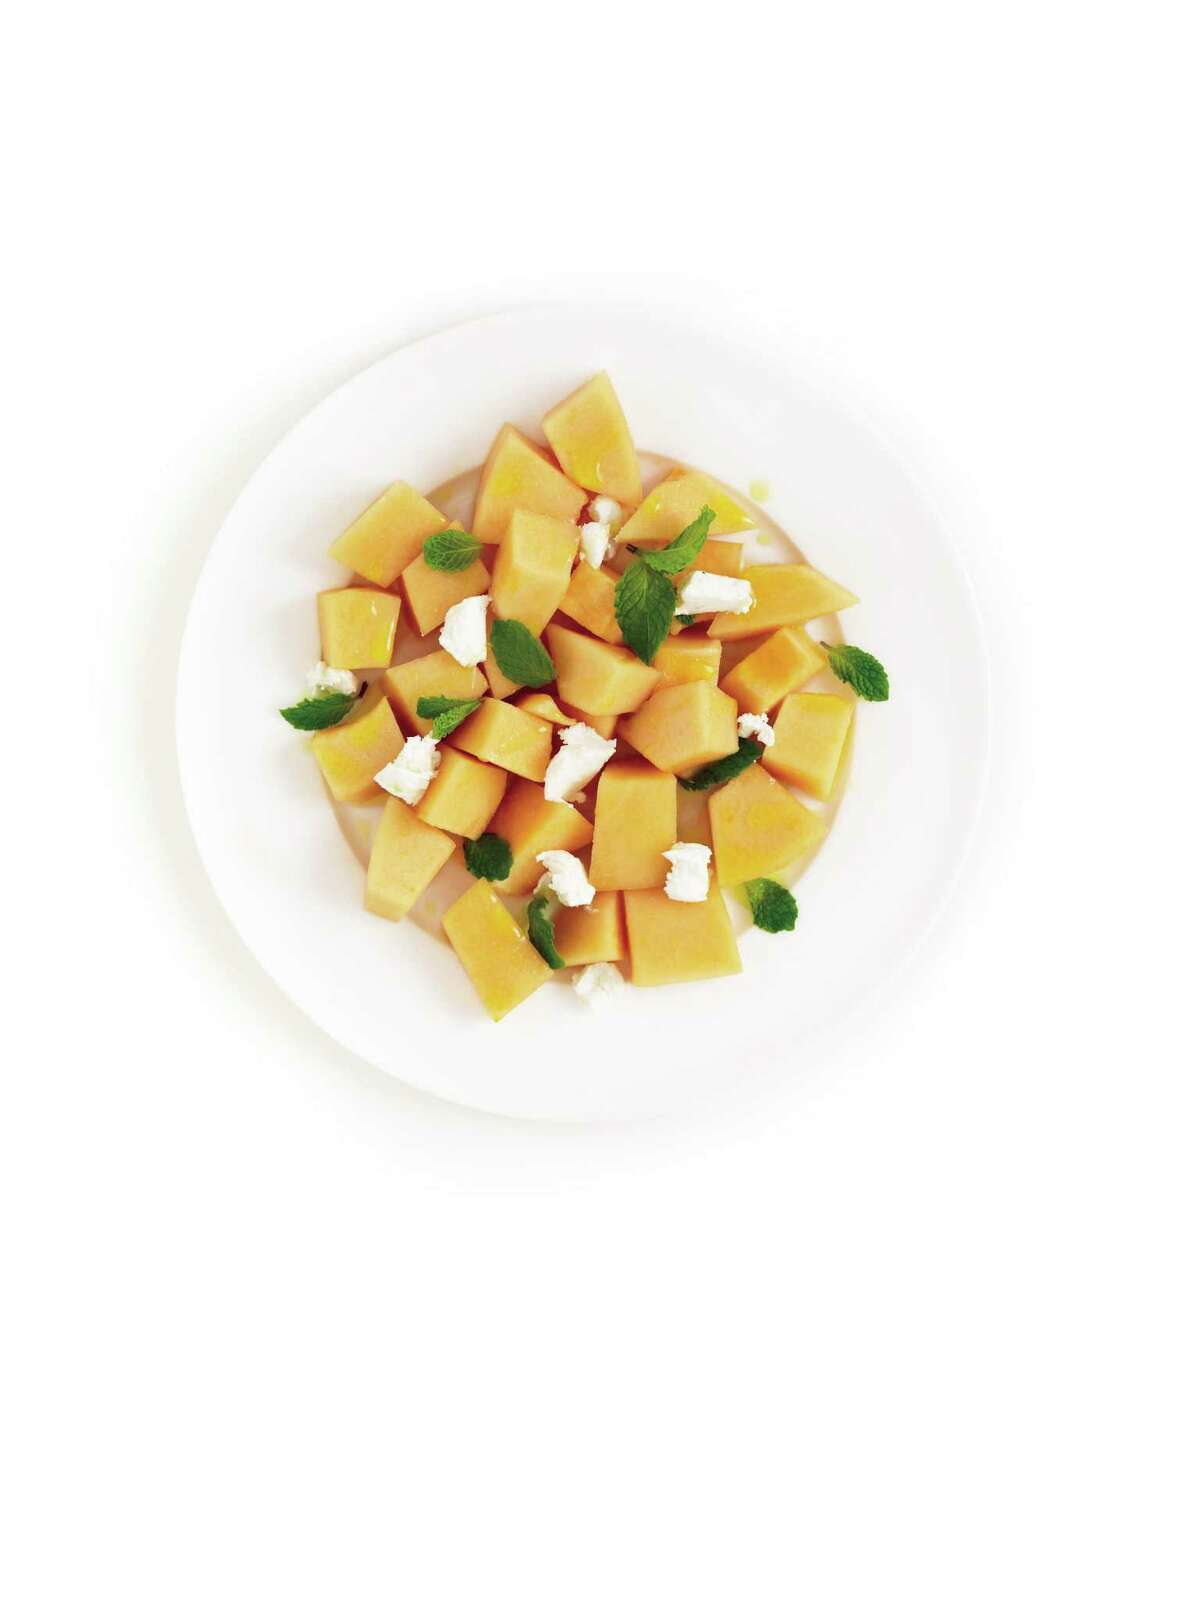 Good Housekeeping recipe for Cantaloupe Goat Cheese Salad.